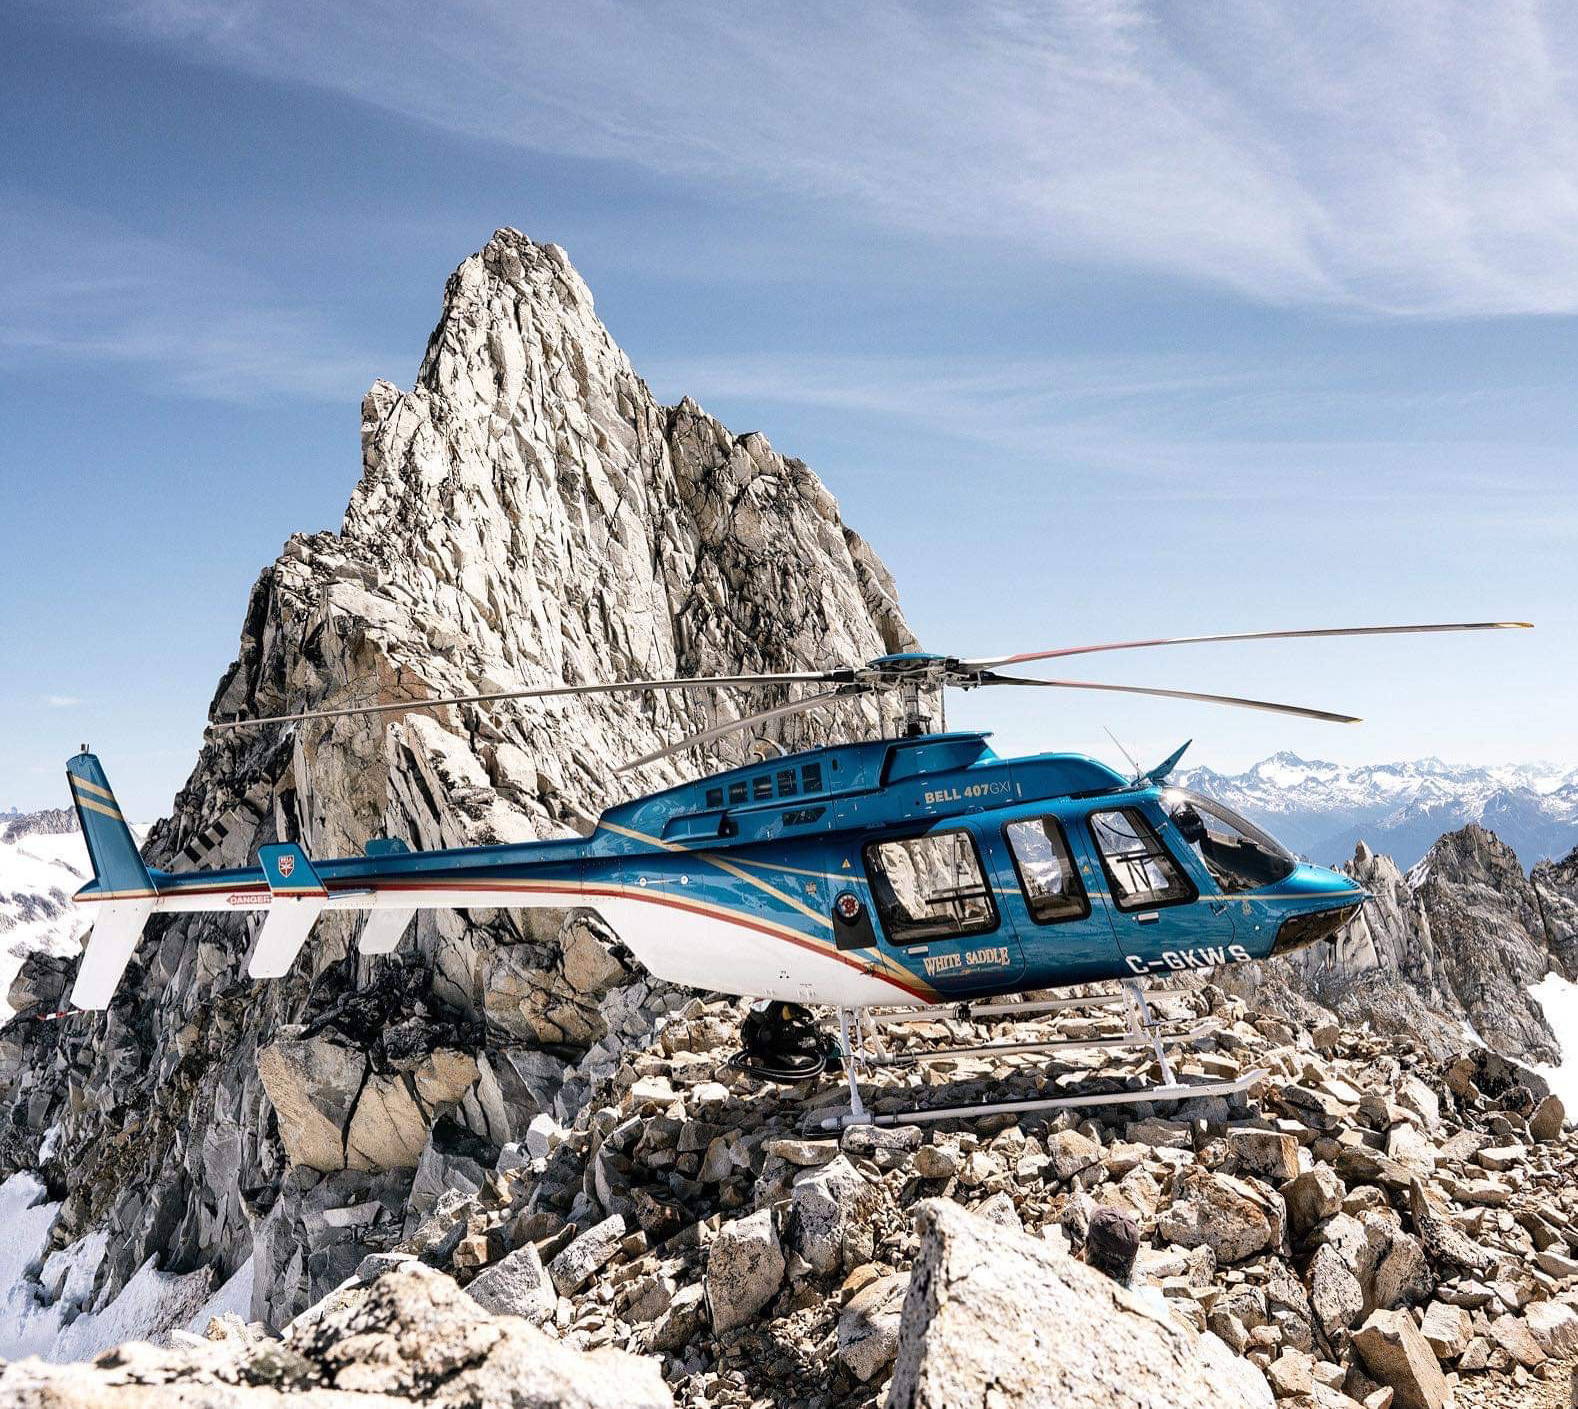 Enter to win a three-day ranch stay at White Saddle Country Inn and helicopter tour with White Saddle Air with in-region vehicle rental supplied by Bella Coola Vehicle Rentals. The destination is near the filming locations of <em>Alone</em> Season 8. Visit landwithoutlimits.com/alone for contest details.